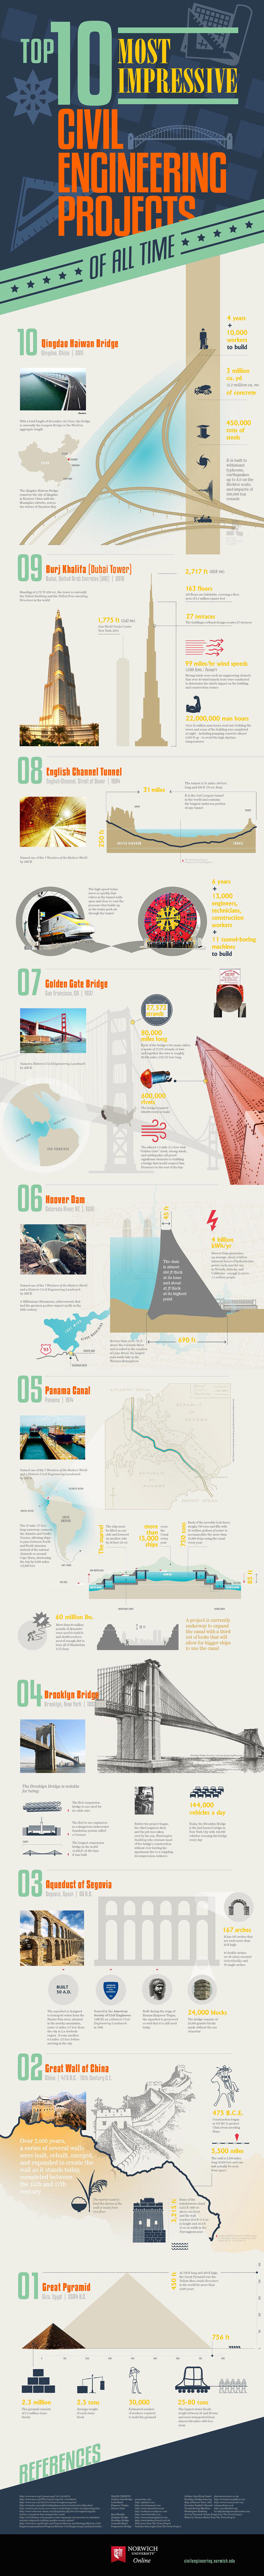 10 Greatest Projects of Civil Engineering Infographic